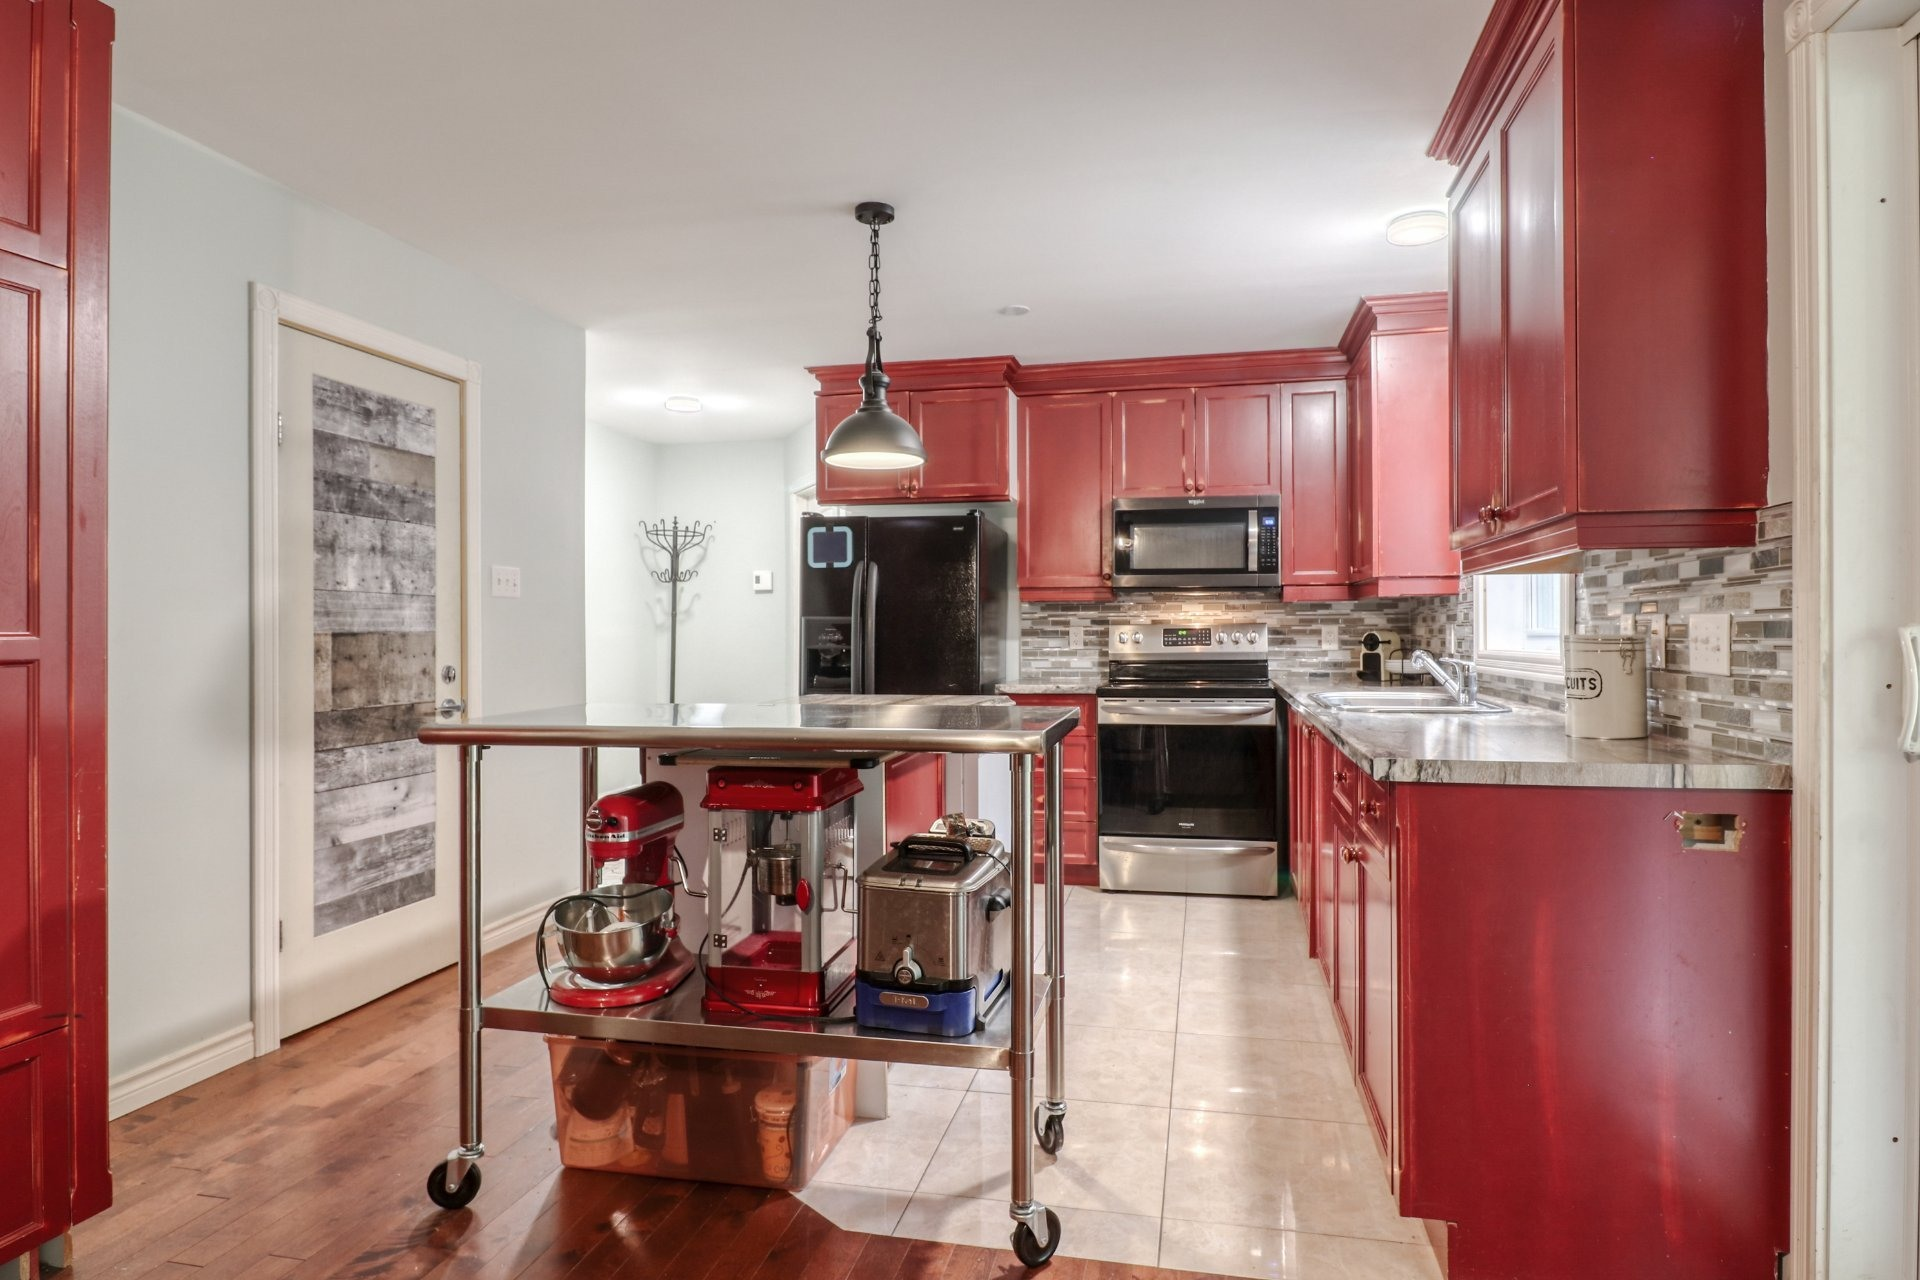 image 4 - House For sale Rawdon - 9 rooms